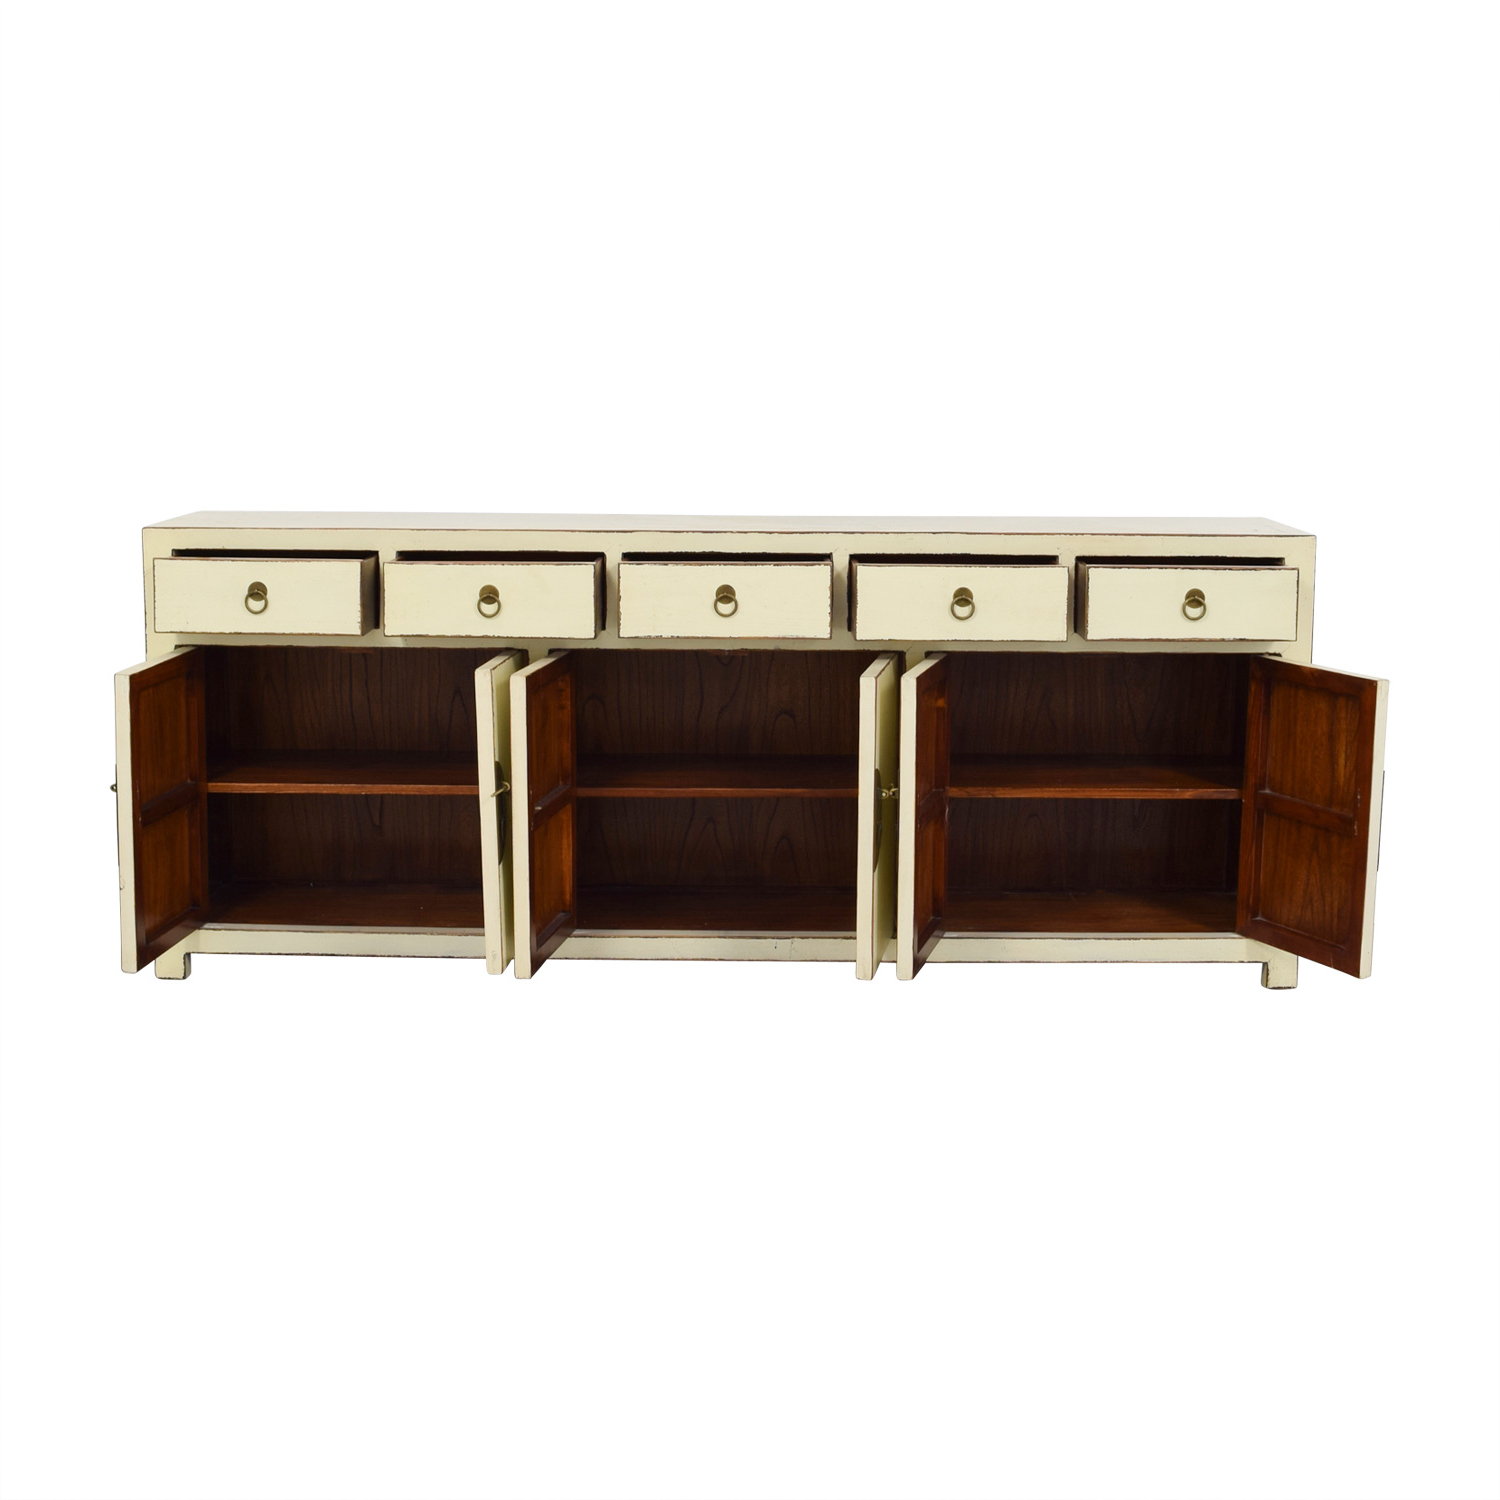 [%72% Off – Asian Barn Asian Barn Custom Cream Five Drawer Sideboard With  Shelves / Storage With Regard To Most Current Seven Seas Asian Sideboards|Seven Seas Asian Sideboards For Recent 72% Off – Asian Barn Asian Barn Custom Cream Five Drawer Sideboard With  Shelves / Storage|Latest Seven Seas Asian Sideboards Throughout 72% Off – Asian Barn Asian Barn Custom Cream Five Drawer Sideboard With  Shelves / Storage|Most Popular 72% Off – Asian Barn Asian Barn Custom Cream Five Drawer Sideboard With  Shelves / Storage Regarding Seven Seas Asian Sideboards%] (View 5 of 20)